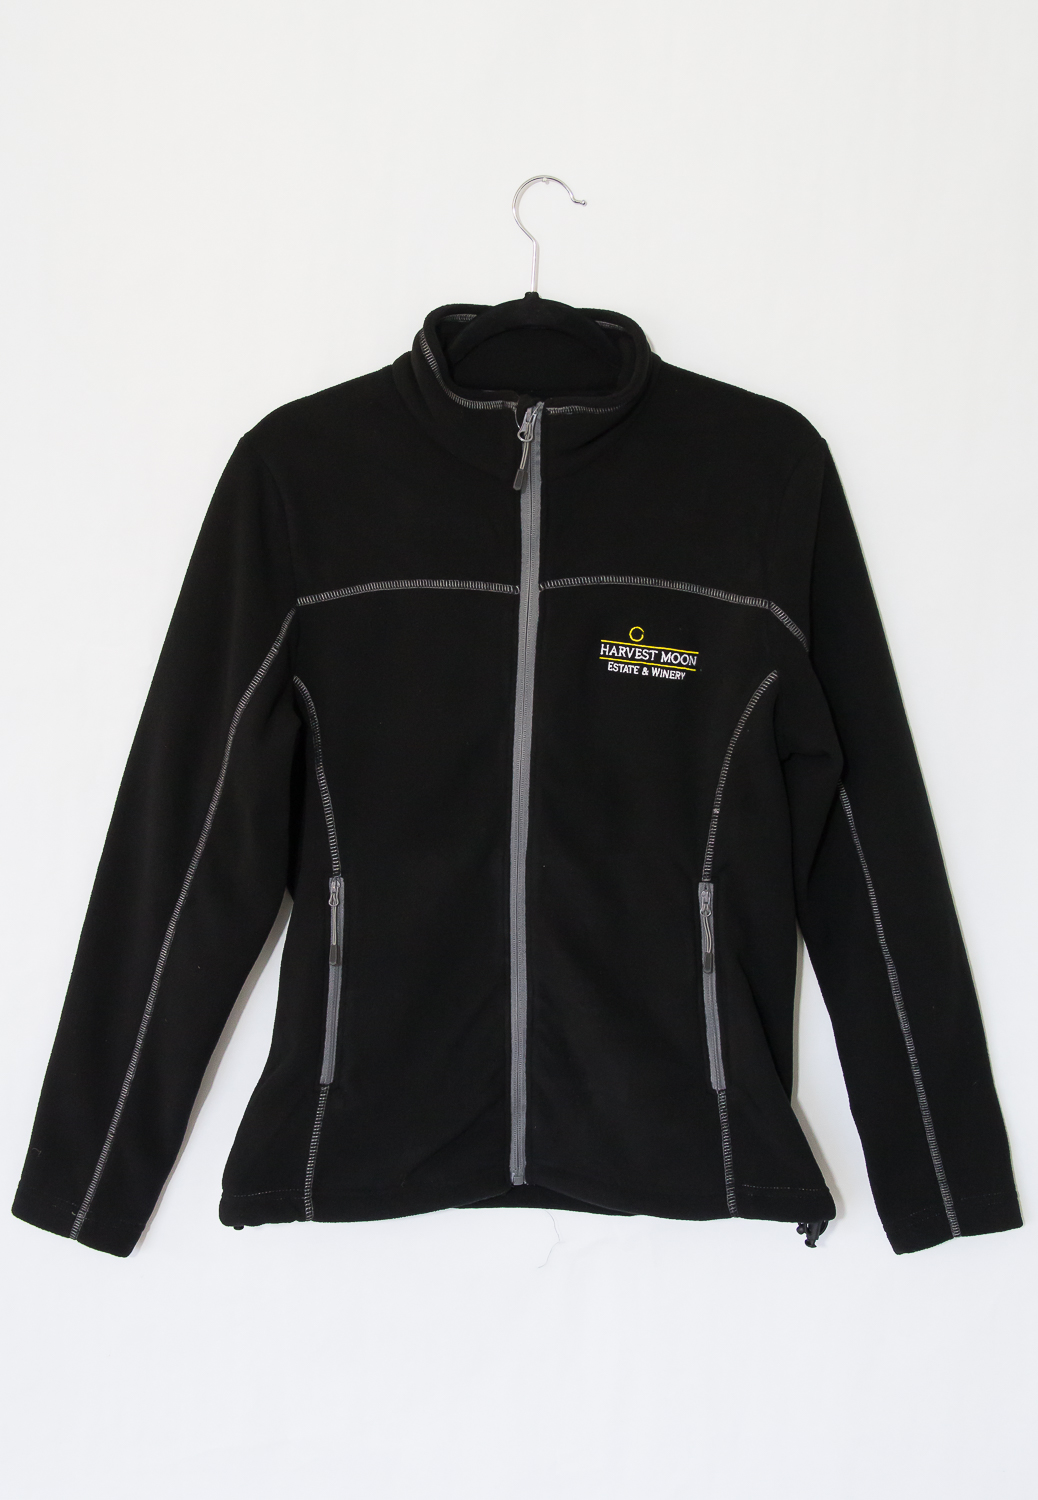 Clothing - Women's Black/Grey Jacket